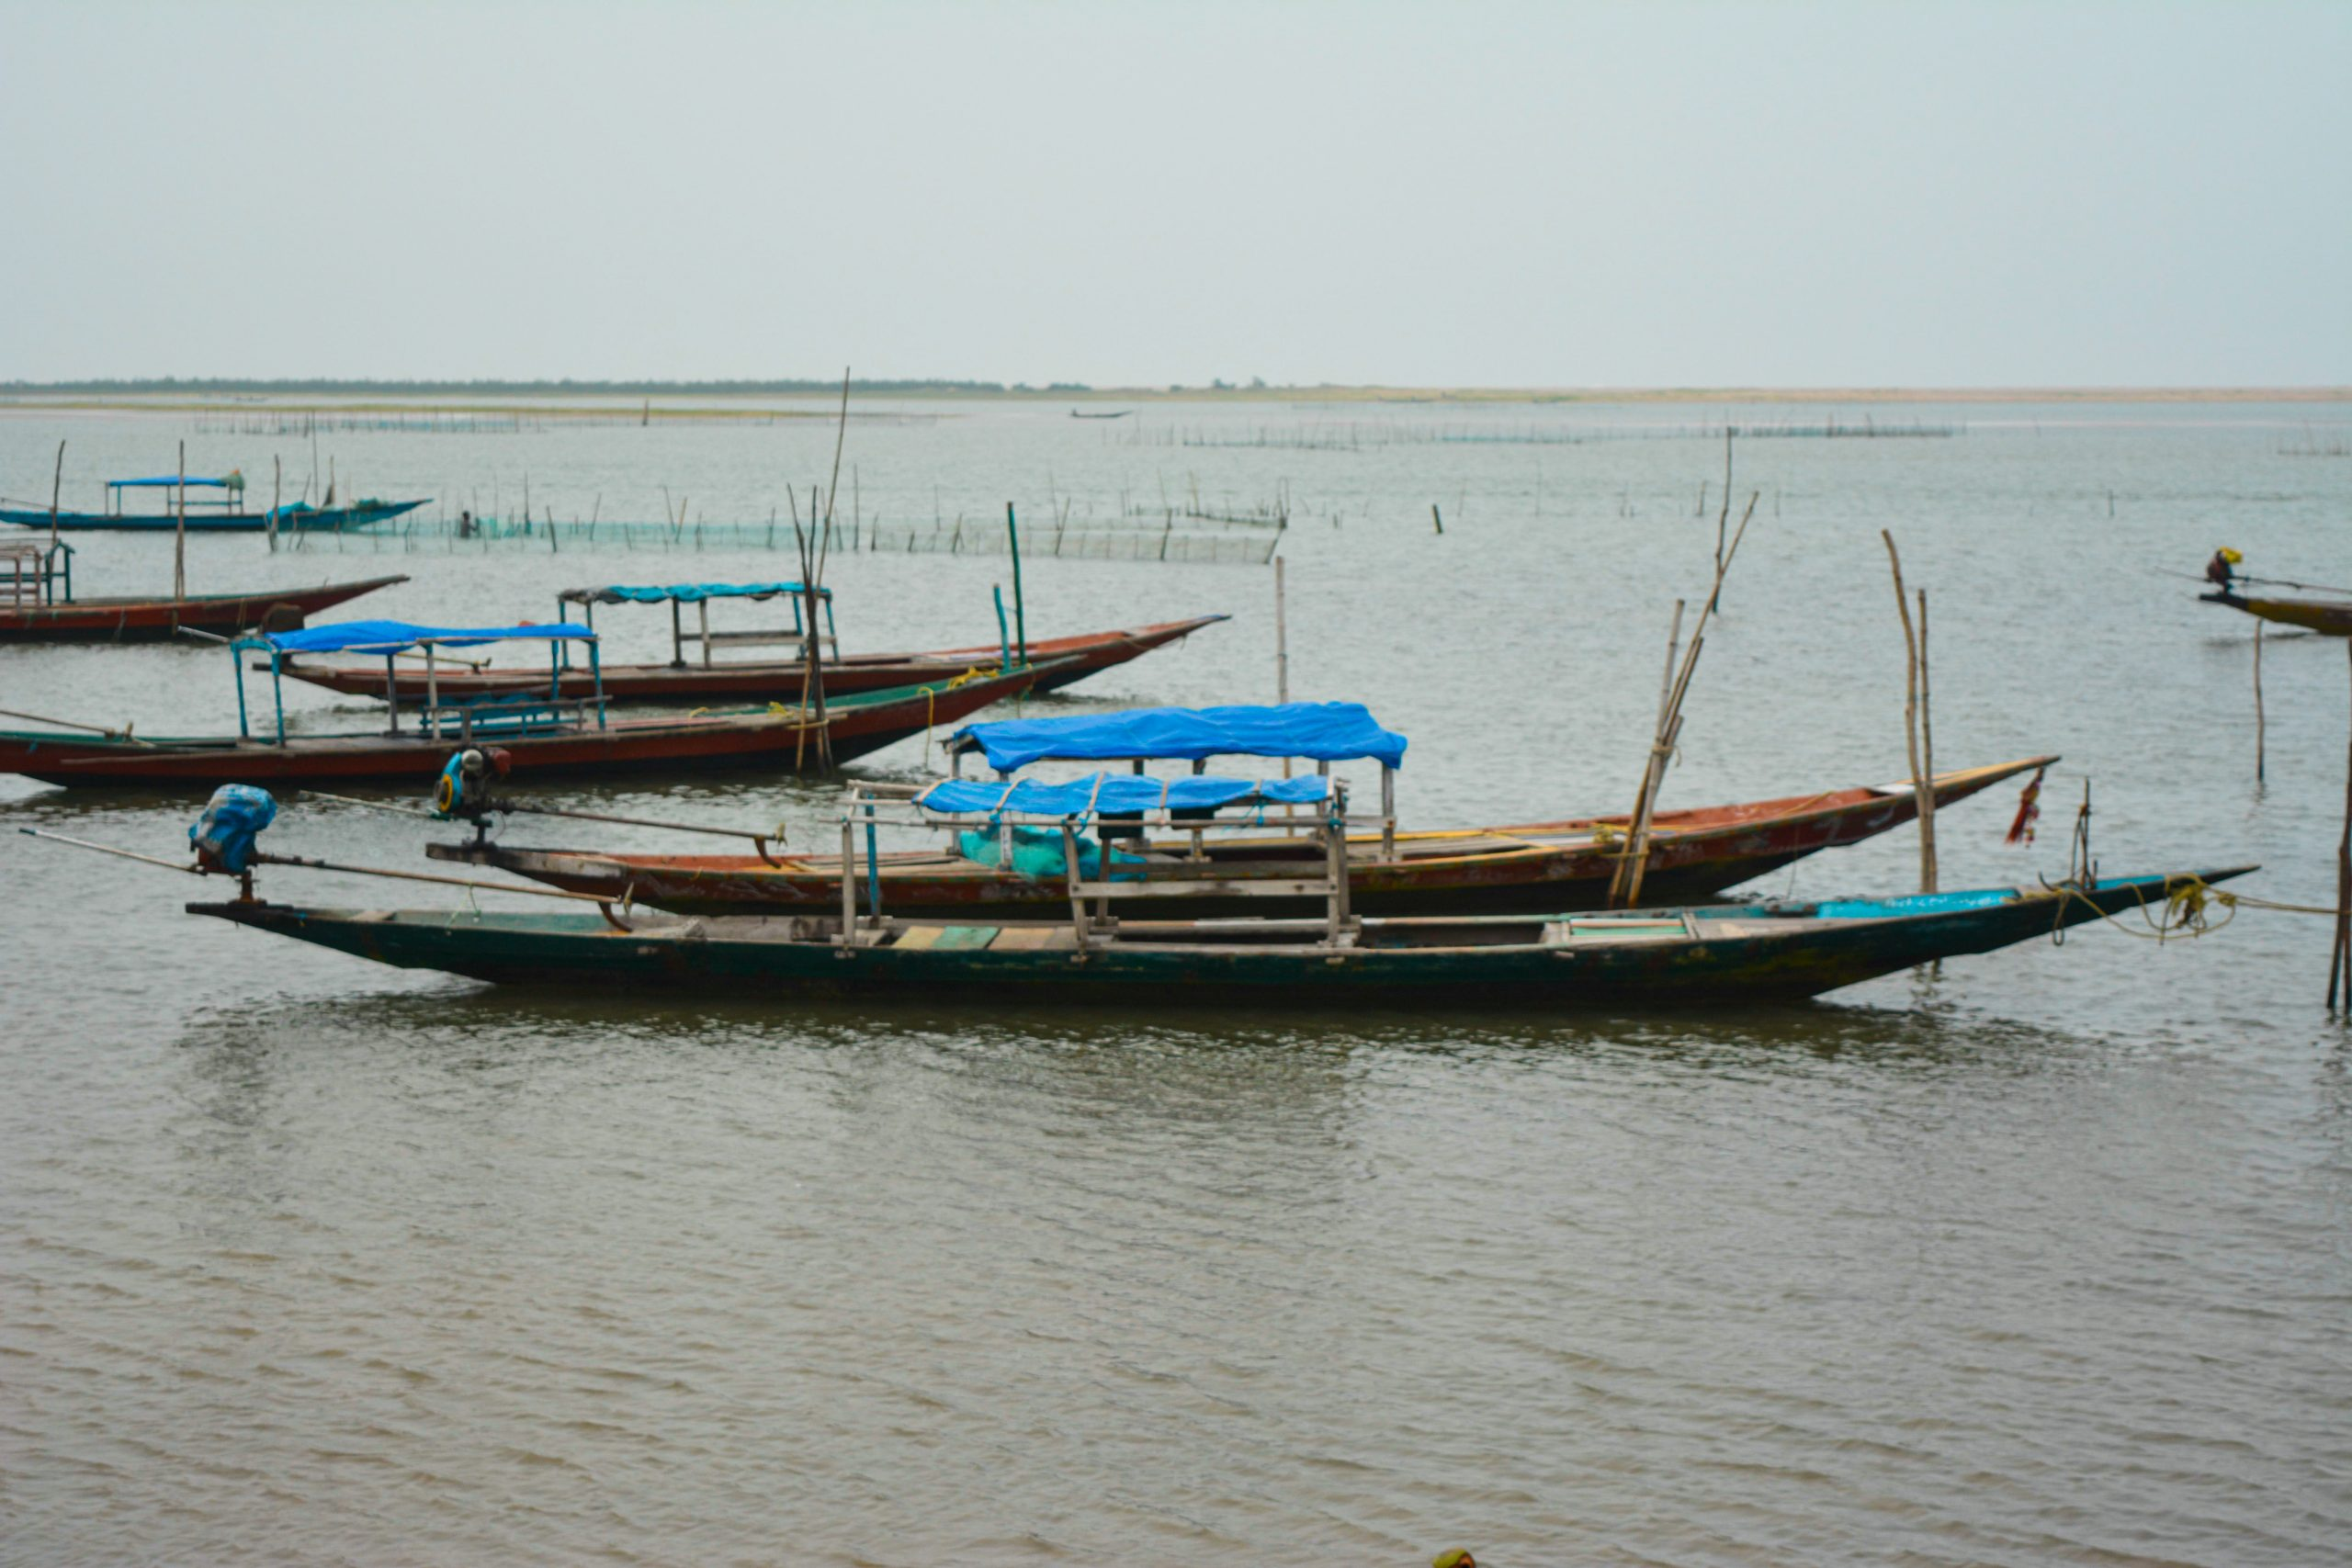 Fishing boats floating on the water